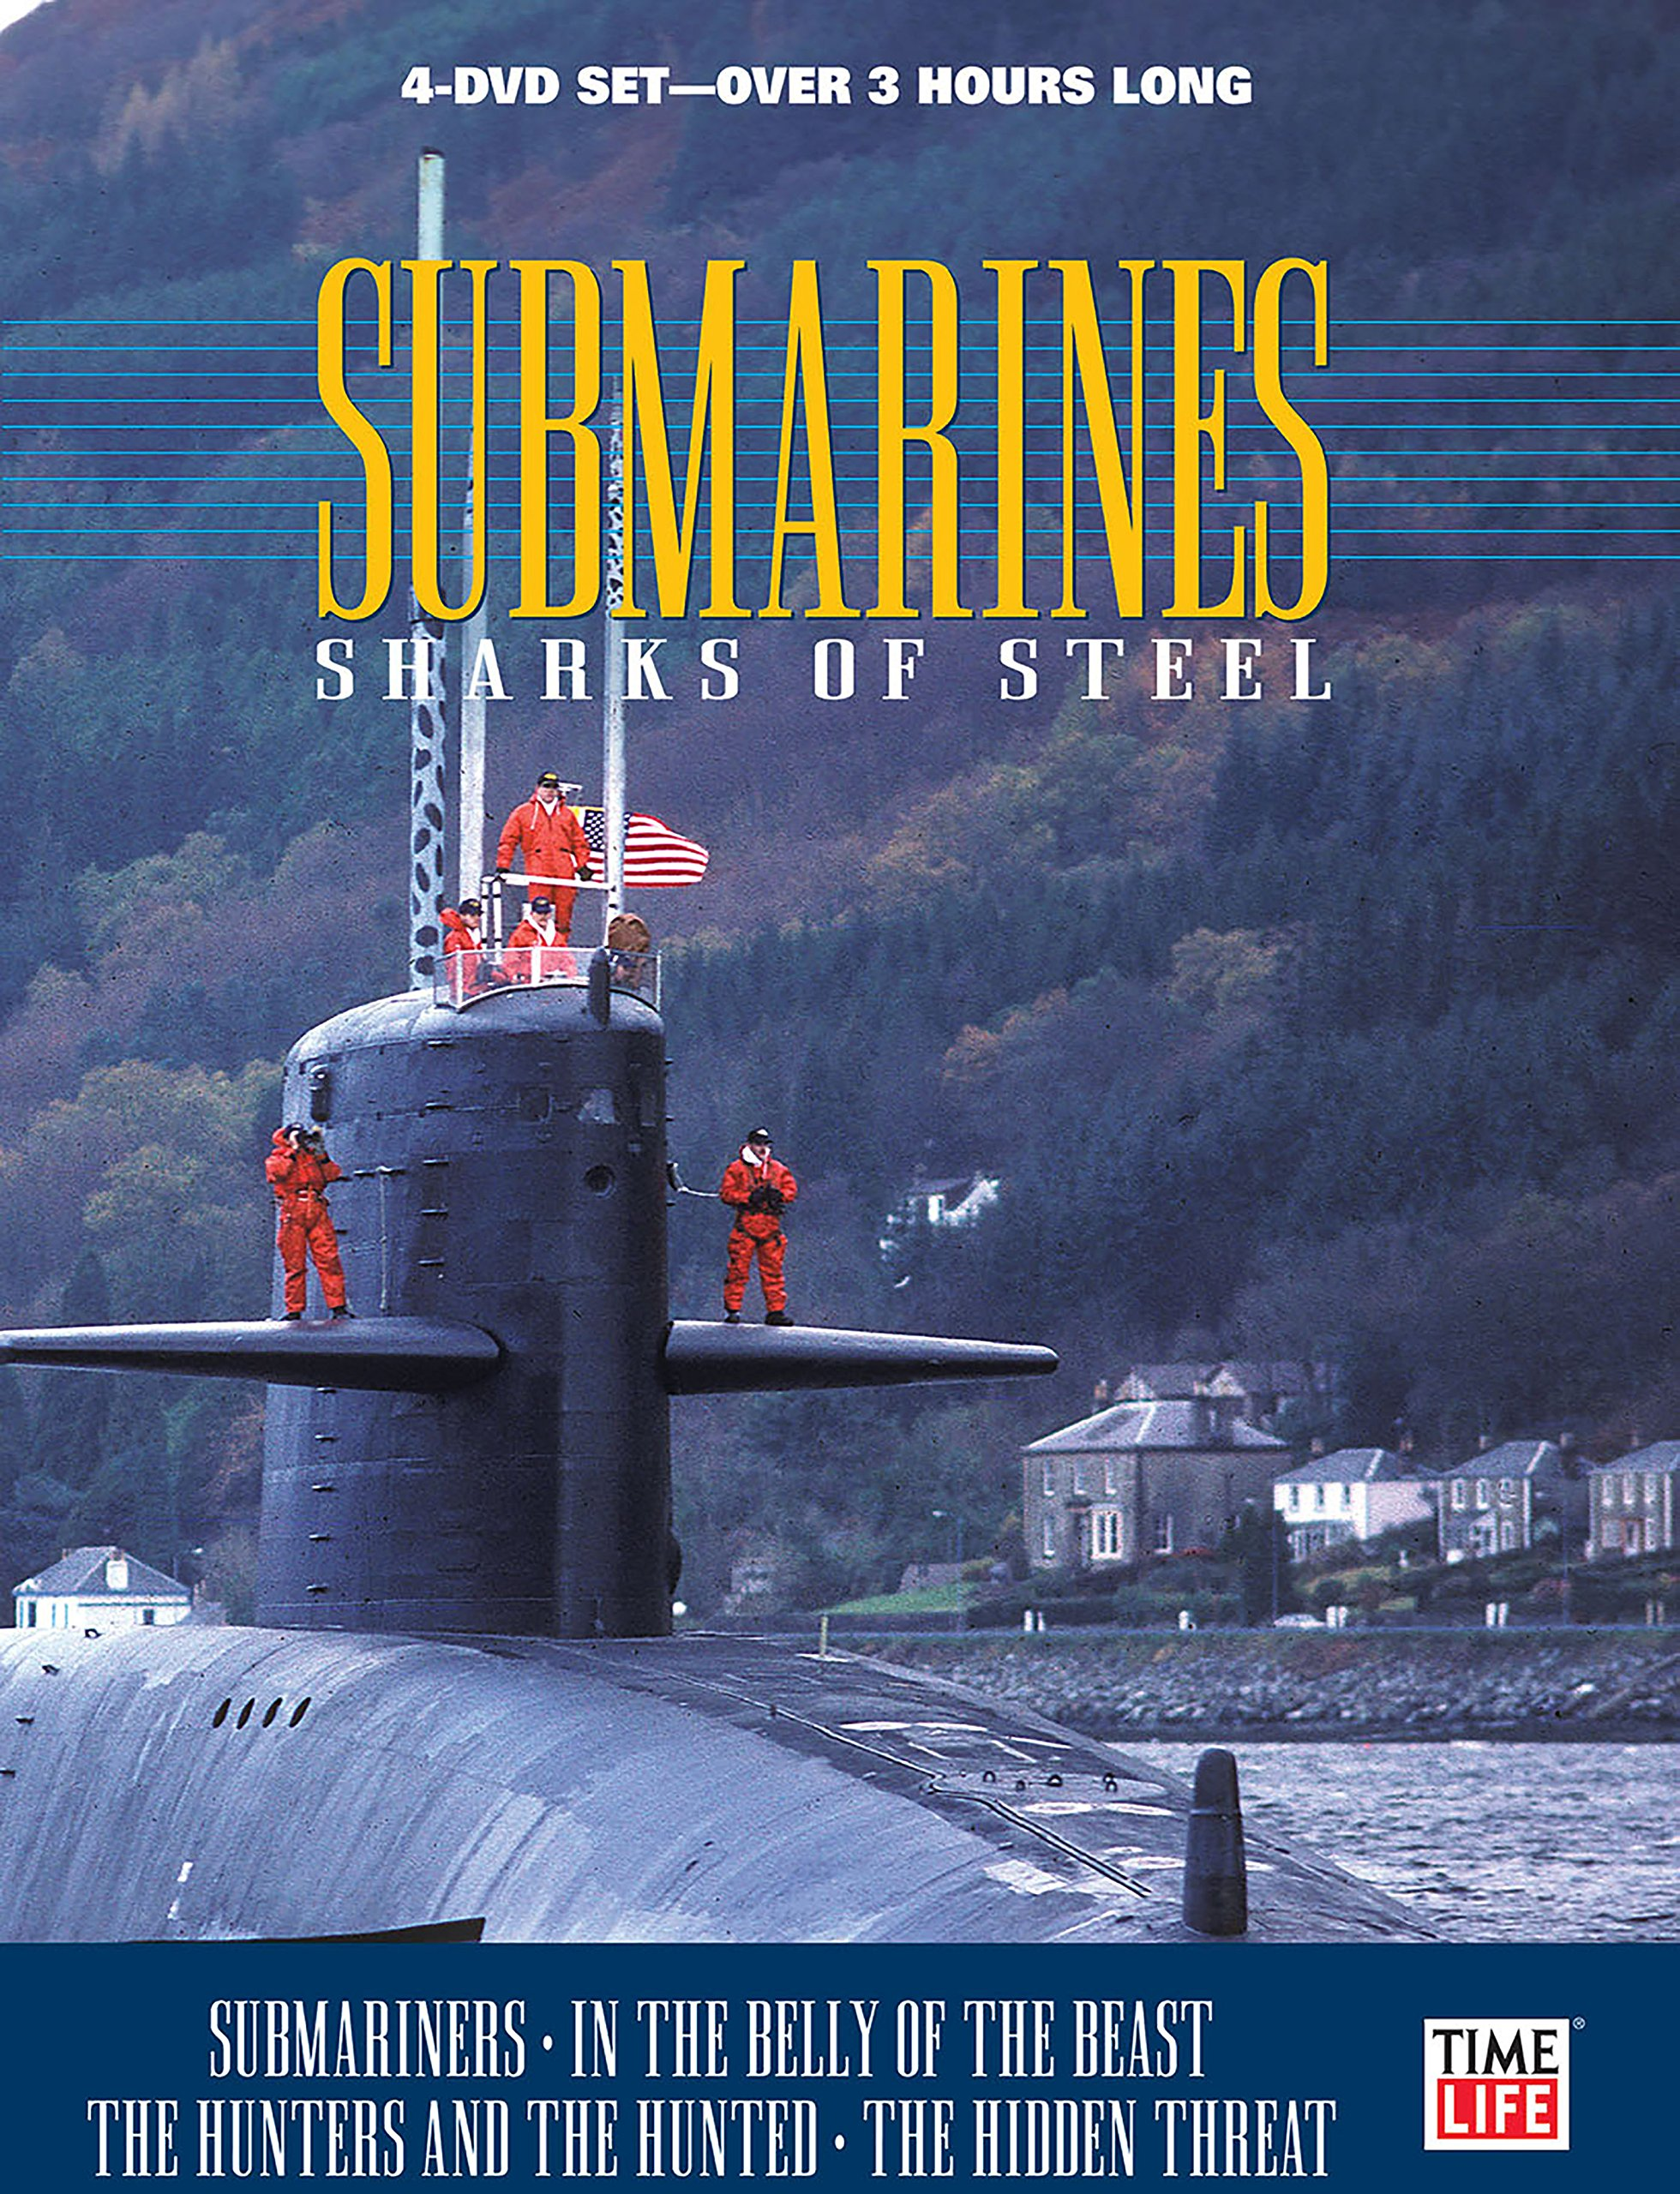 Submarines: Sharks of Steel (4DVD) by Time Life